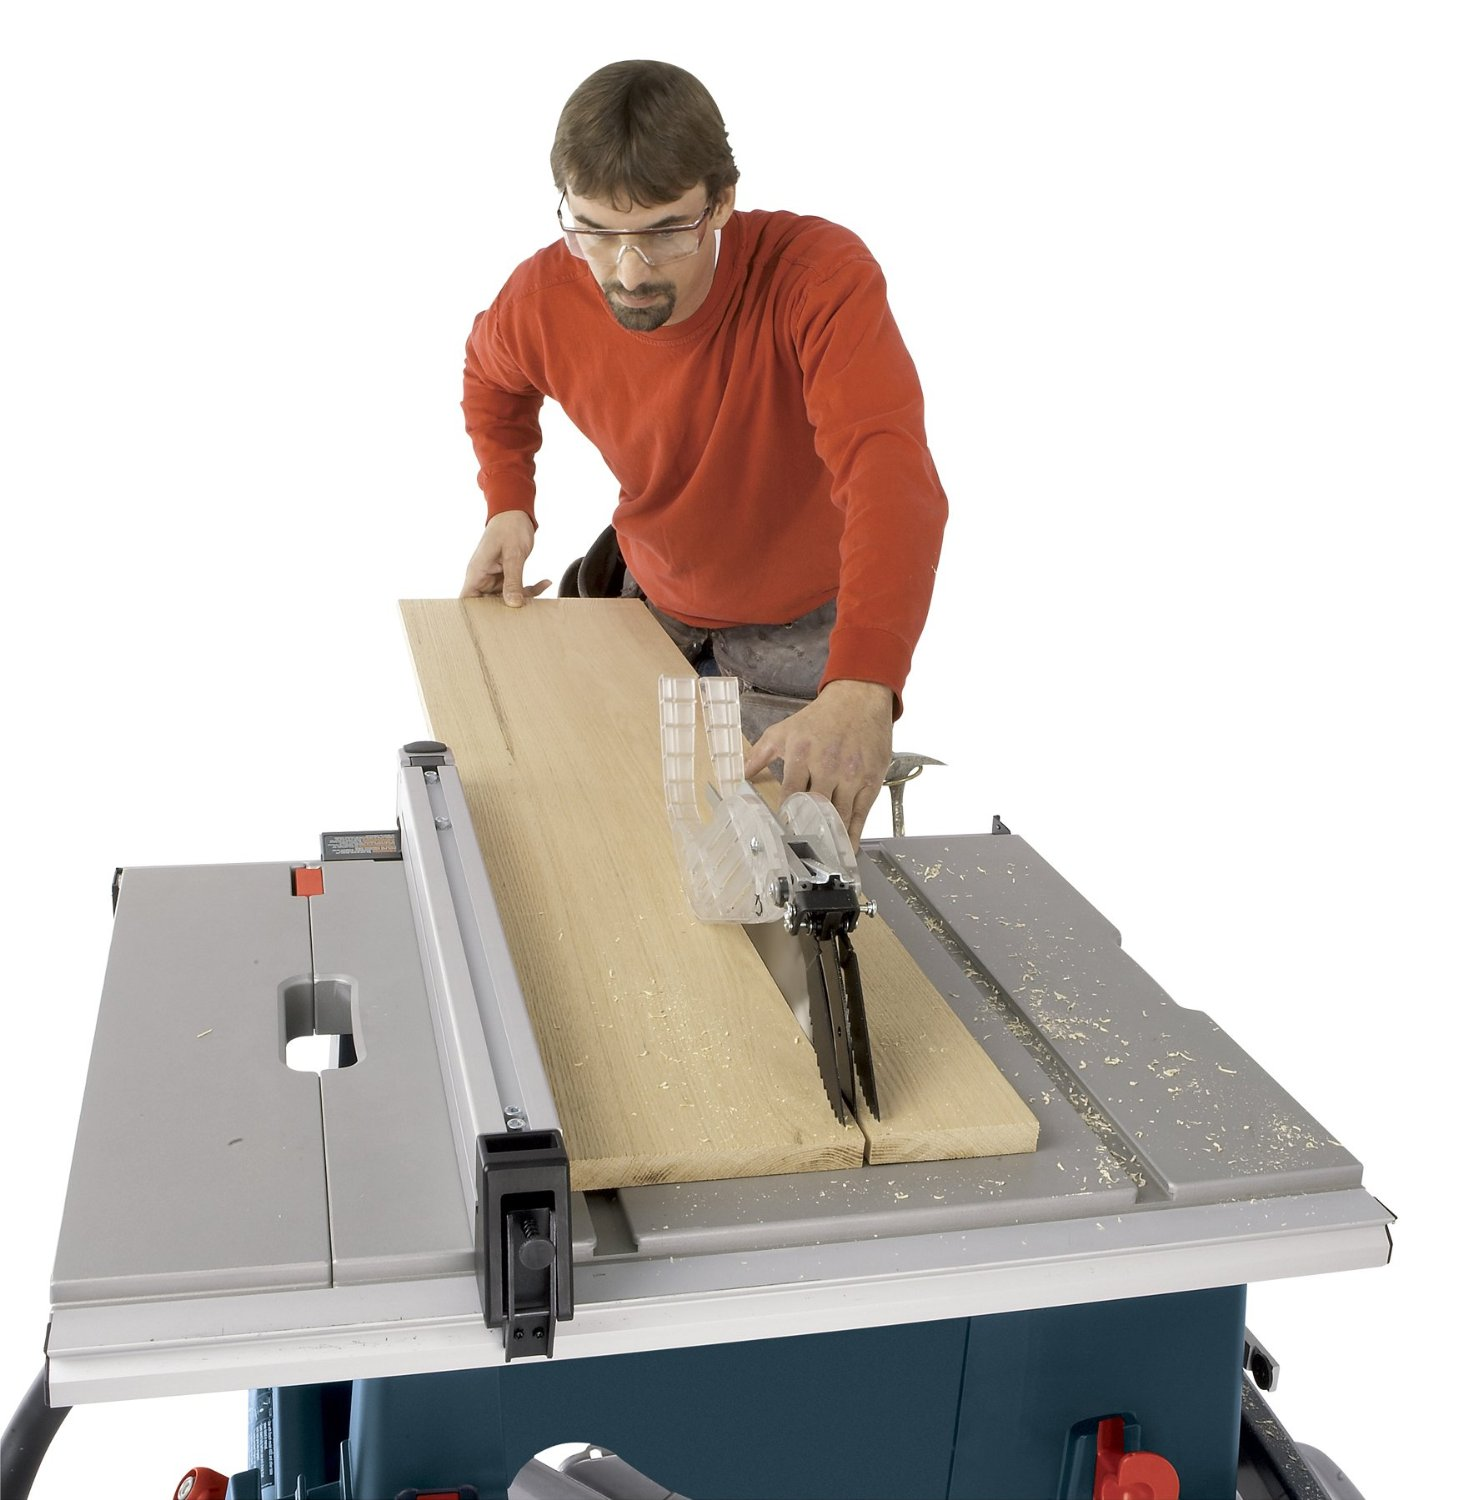 Bosch 4100 09 10 inch worksite table saw review for Table 09 reviews